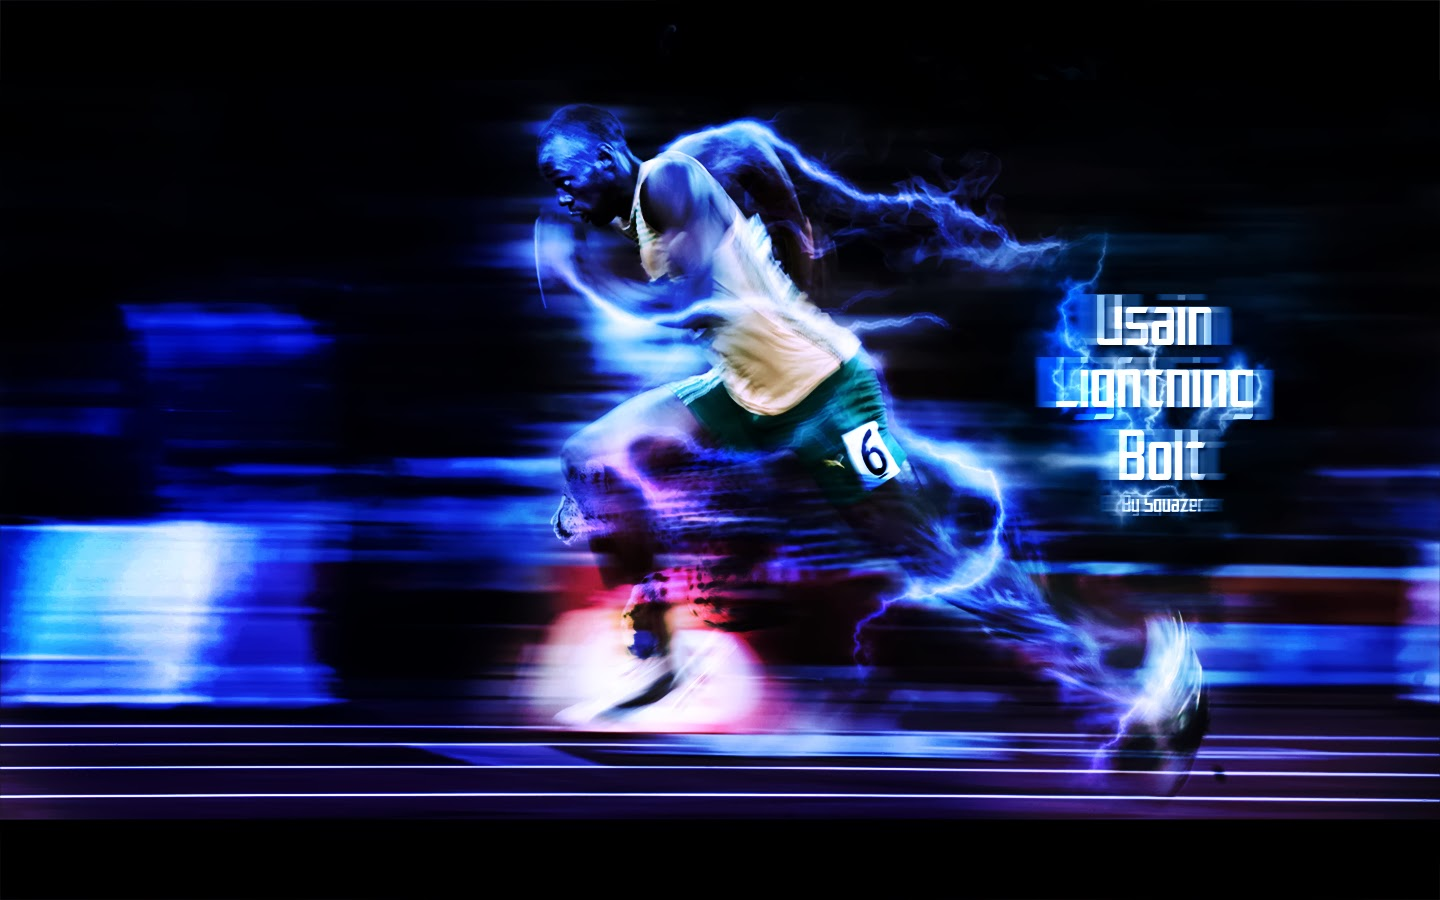 Words celebrities wallpapers usain bolt latest hd wallpapers 2014 - Usain bolt running hd photos ...